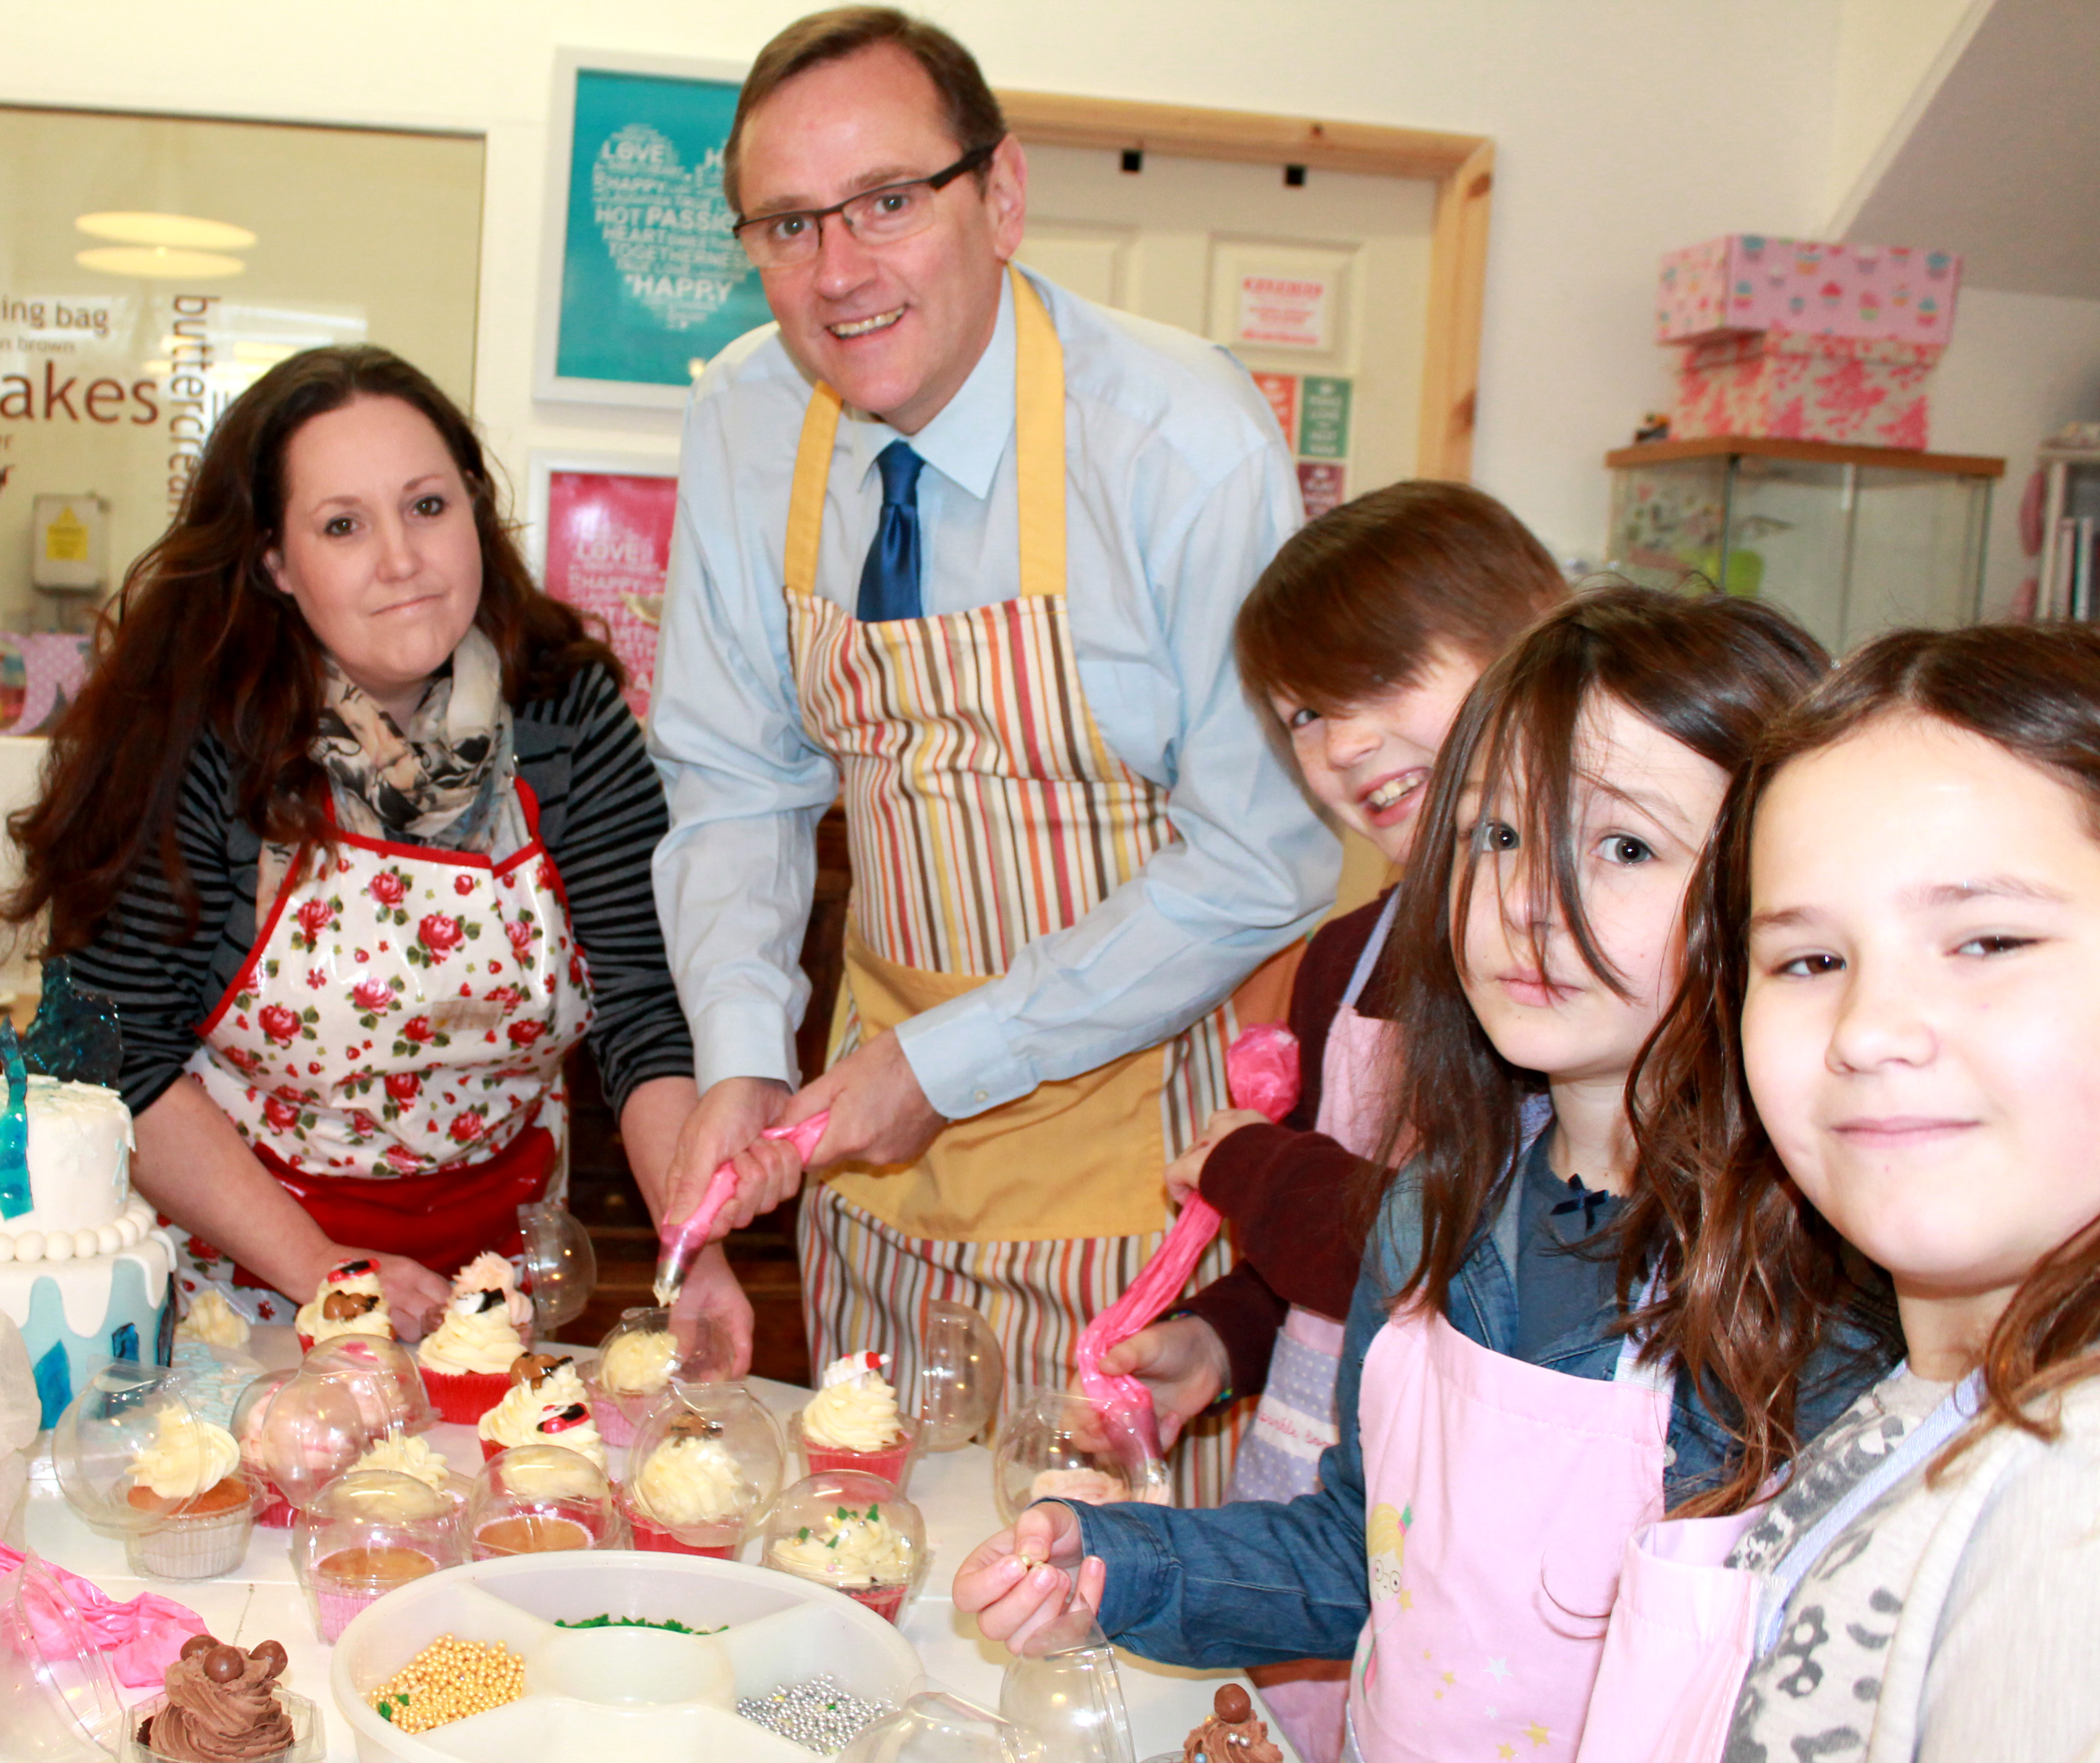 MP Backs Small Businesses in Aycliffe Town Centre